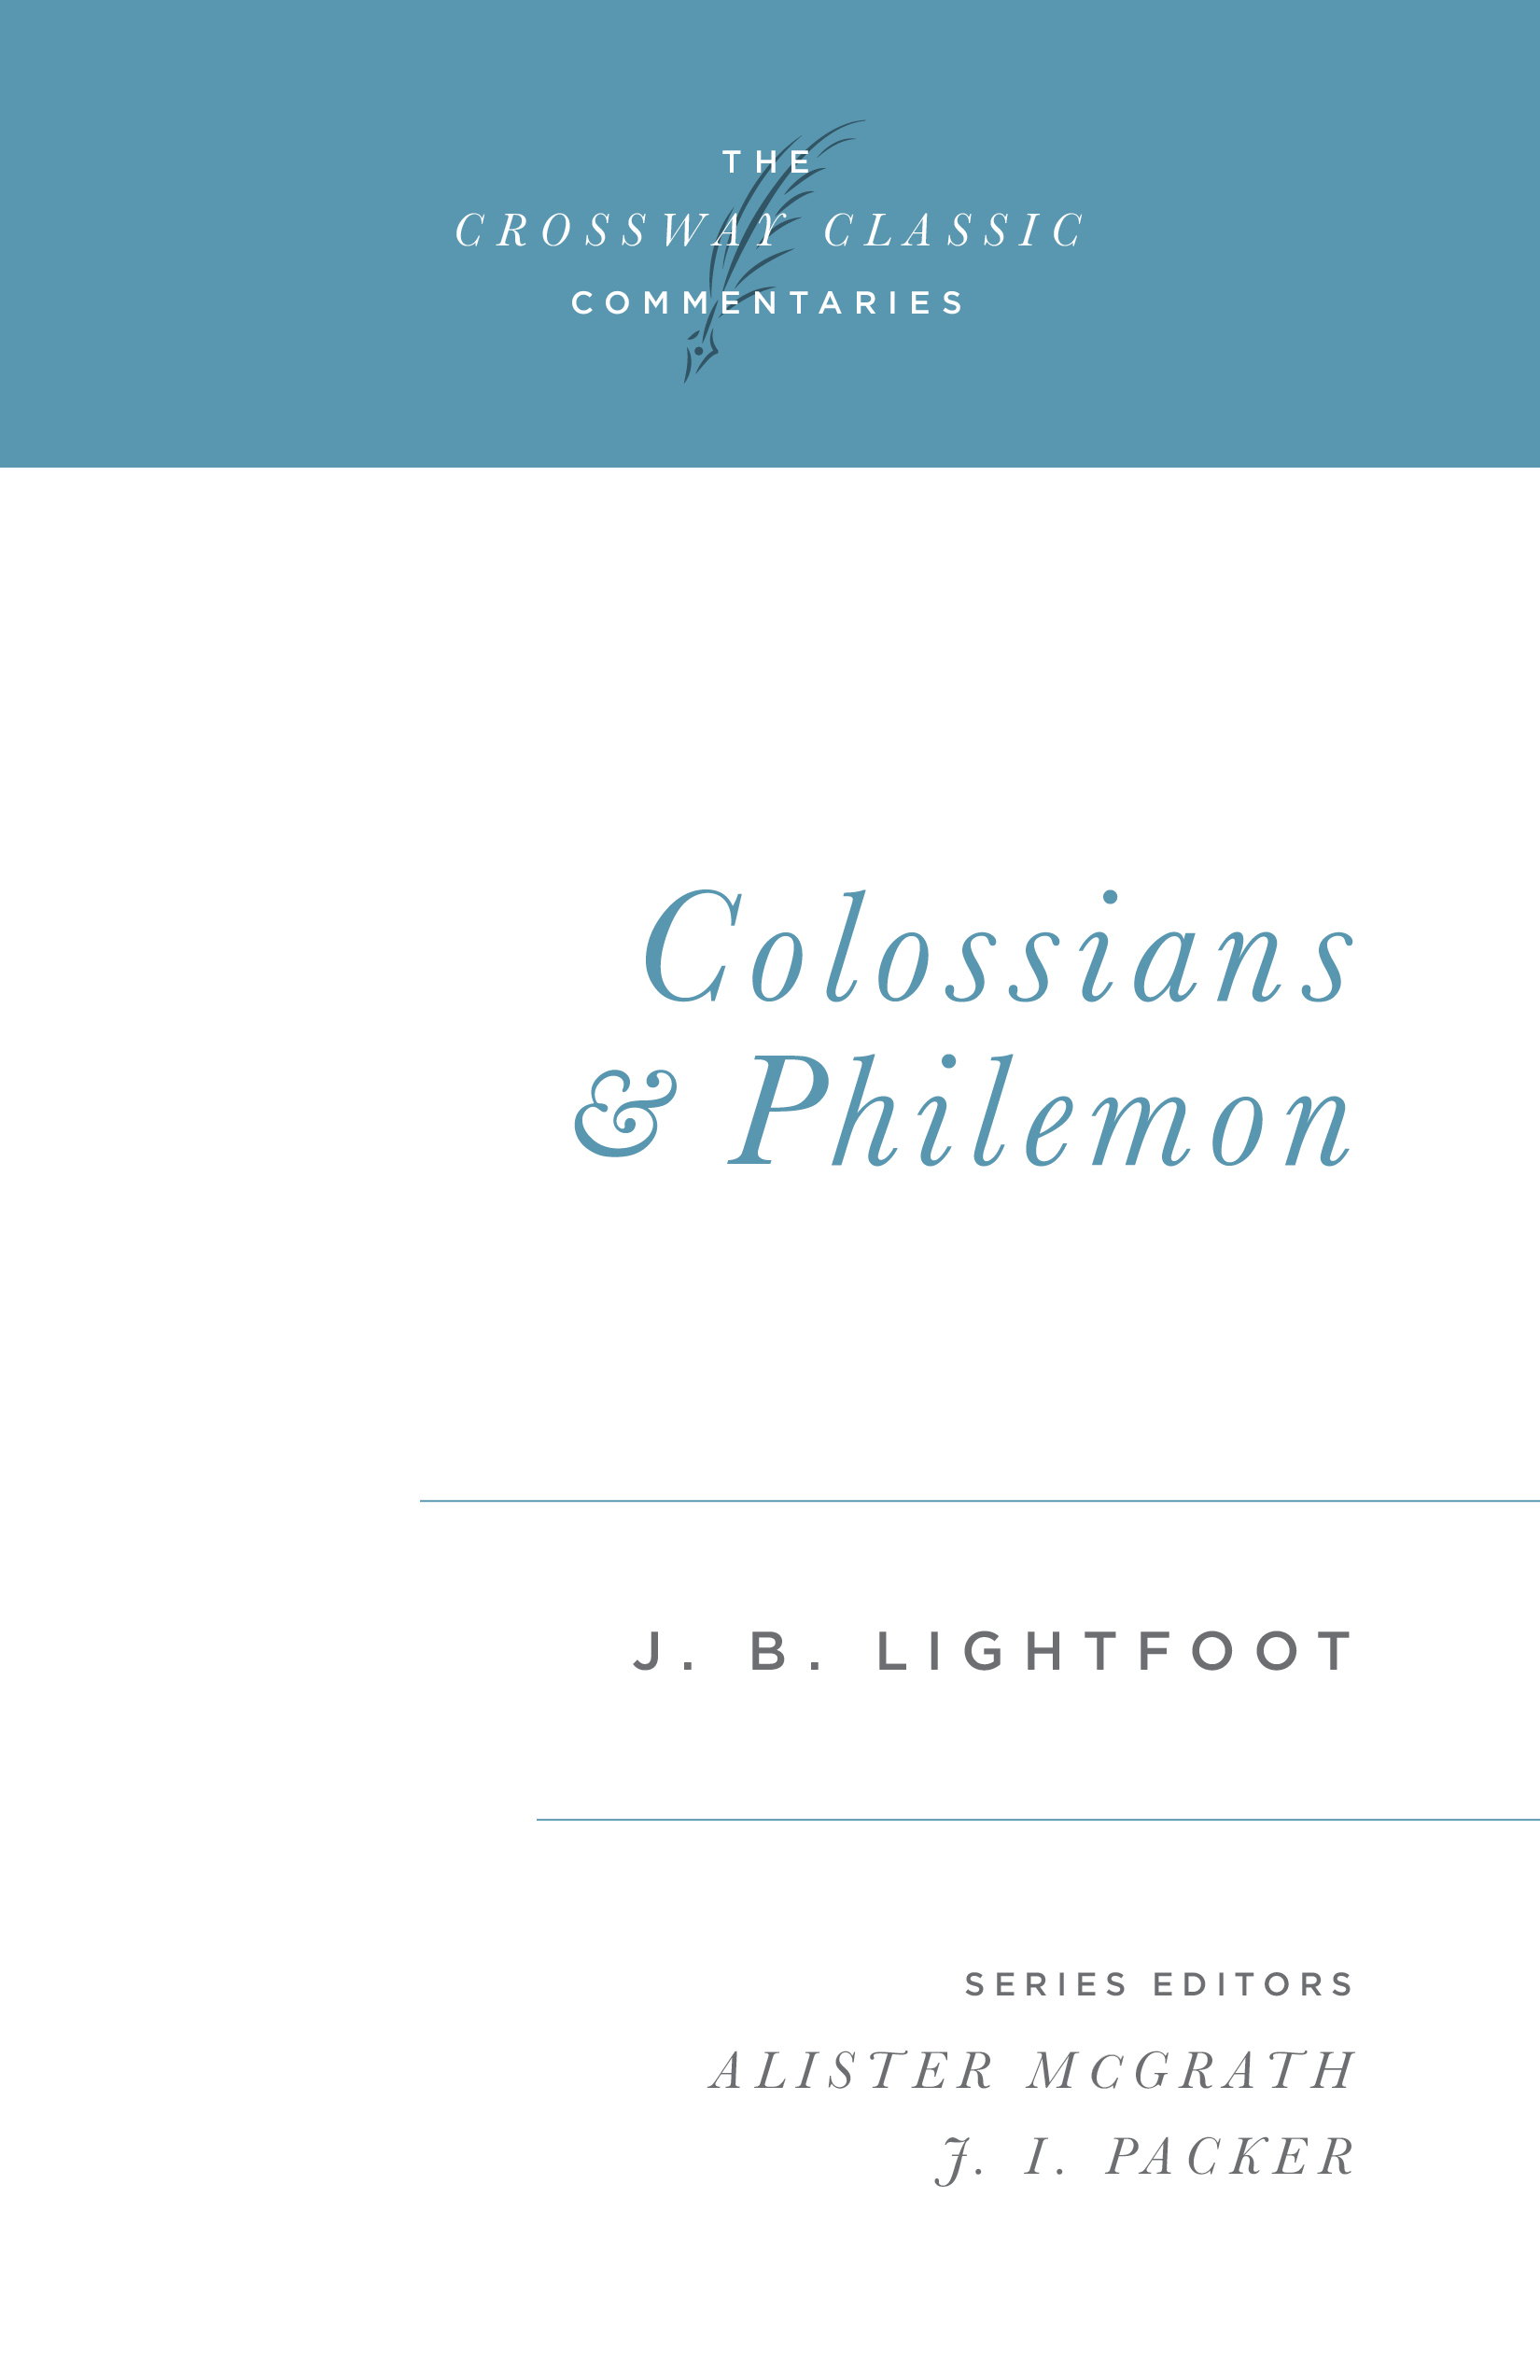 Crossway Classic Commentary - Colossians and Philemon